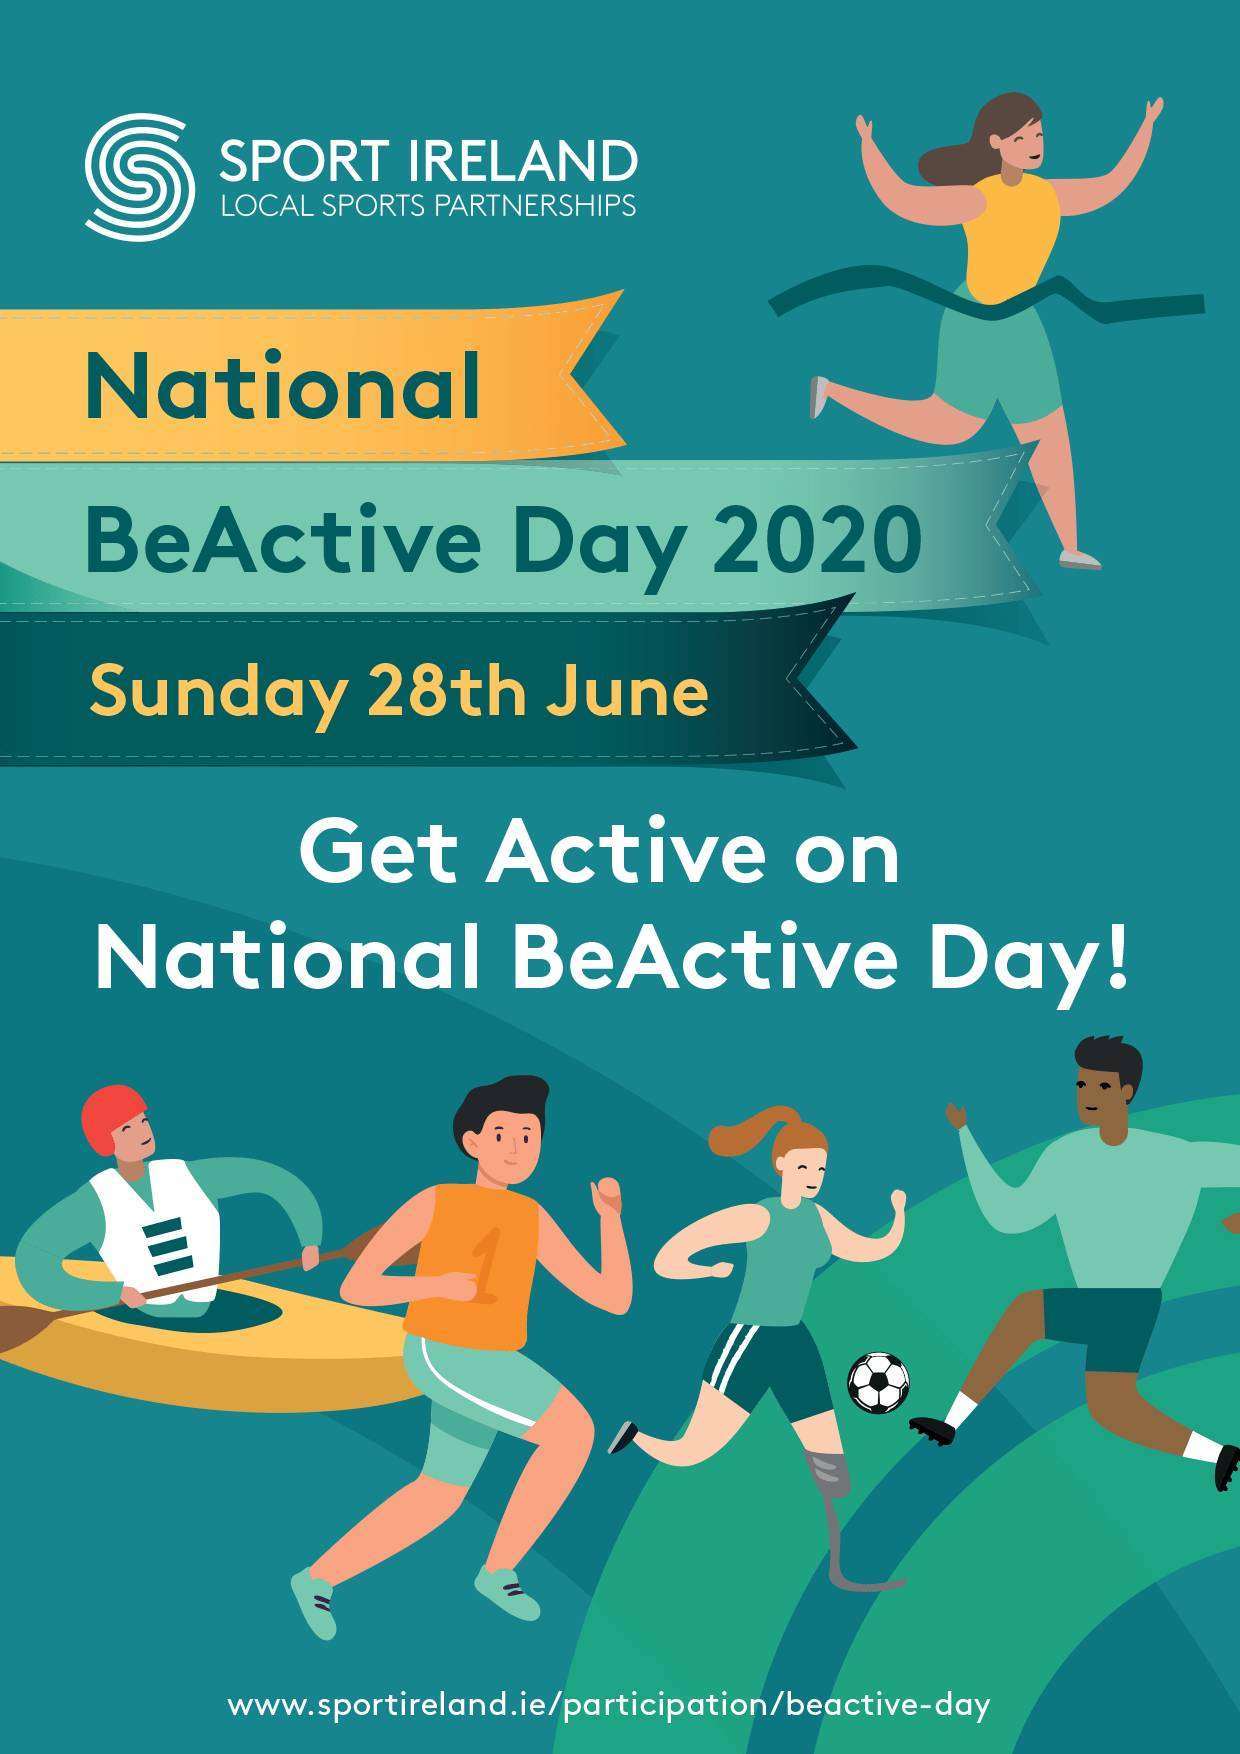 National BeActive Day June 28th